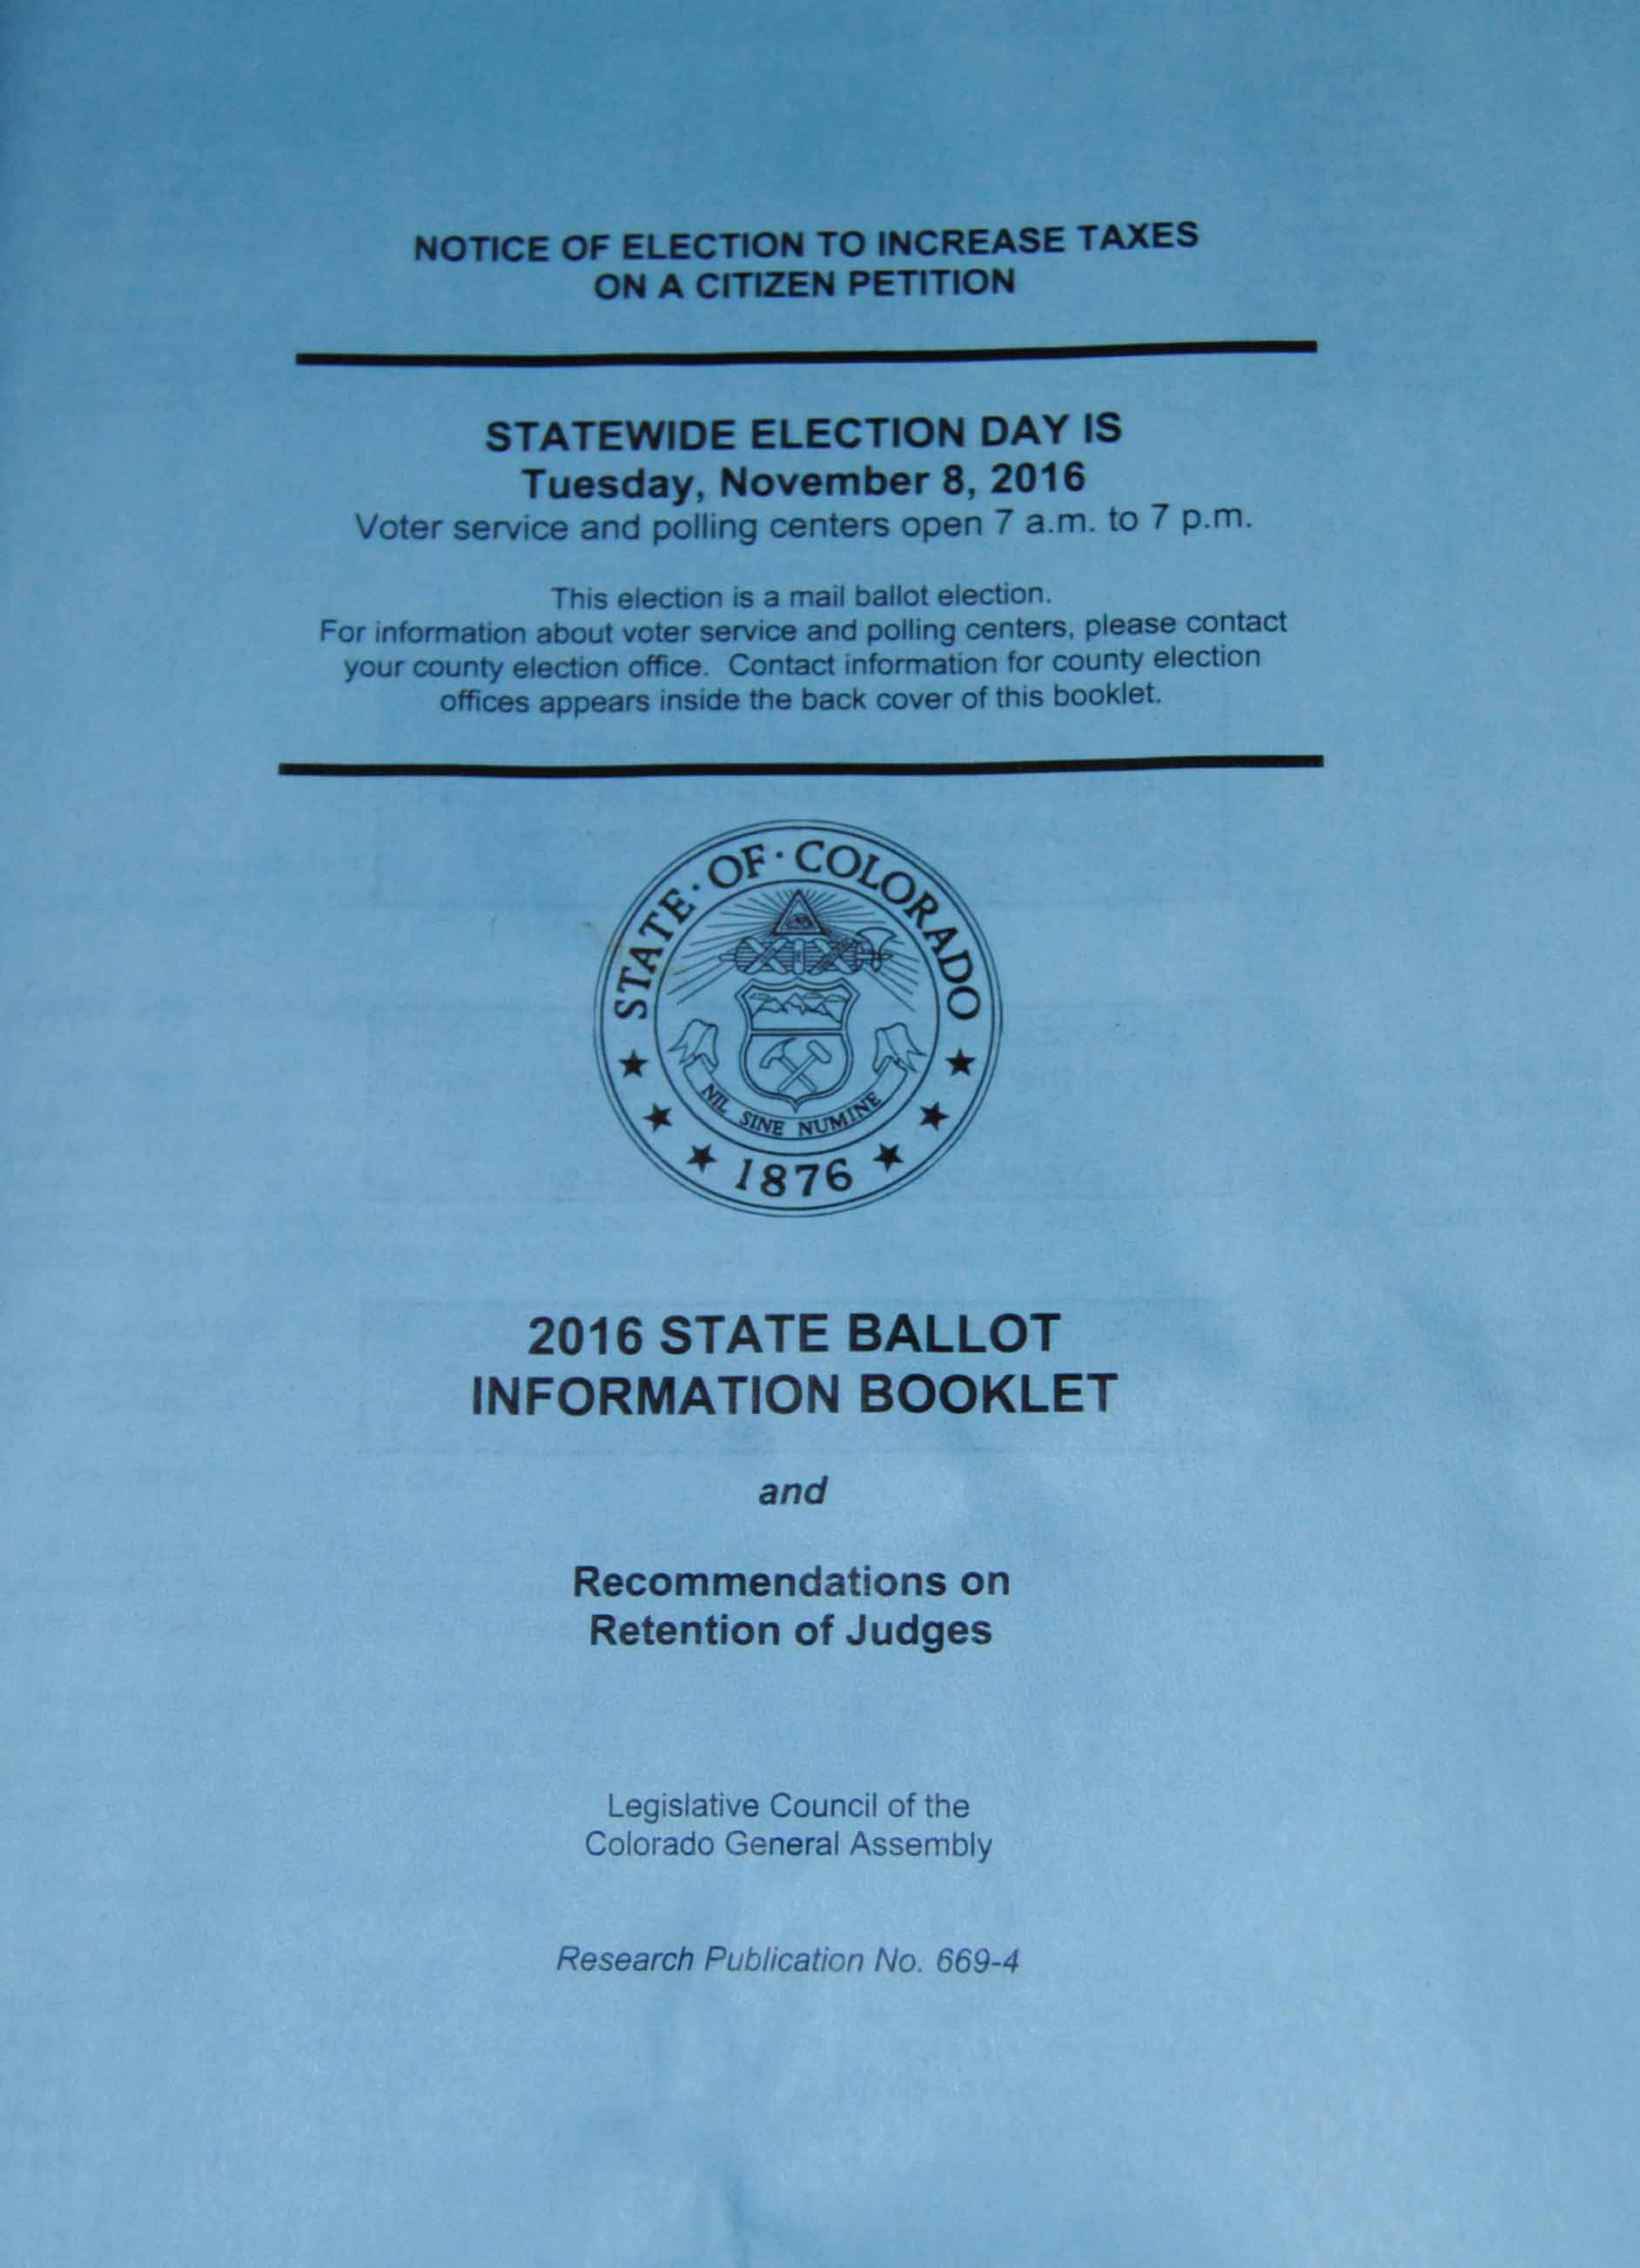 Voters can access information about the amendments and propositions in the 2016 State Ballet of Colorado.